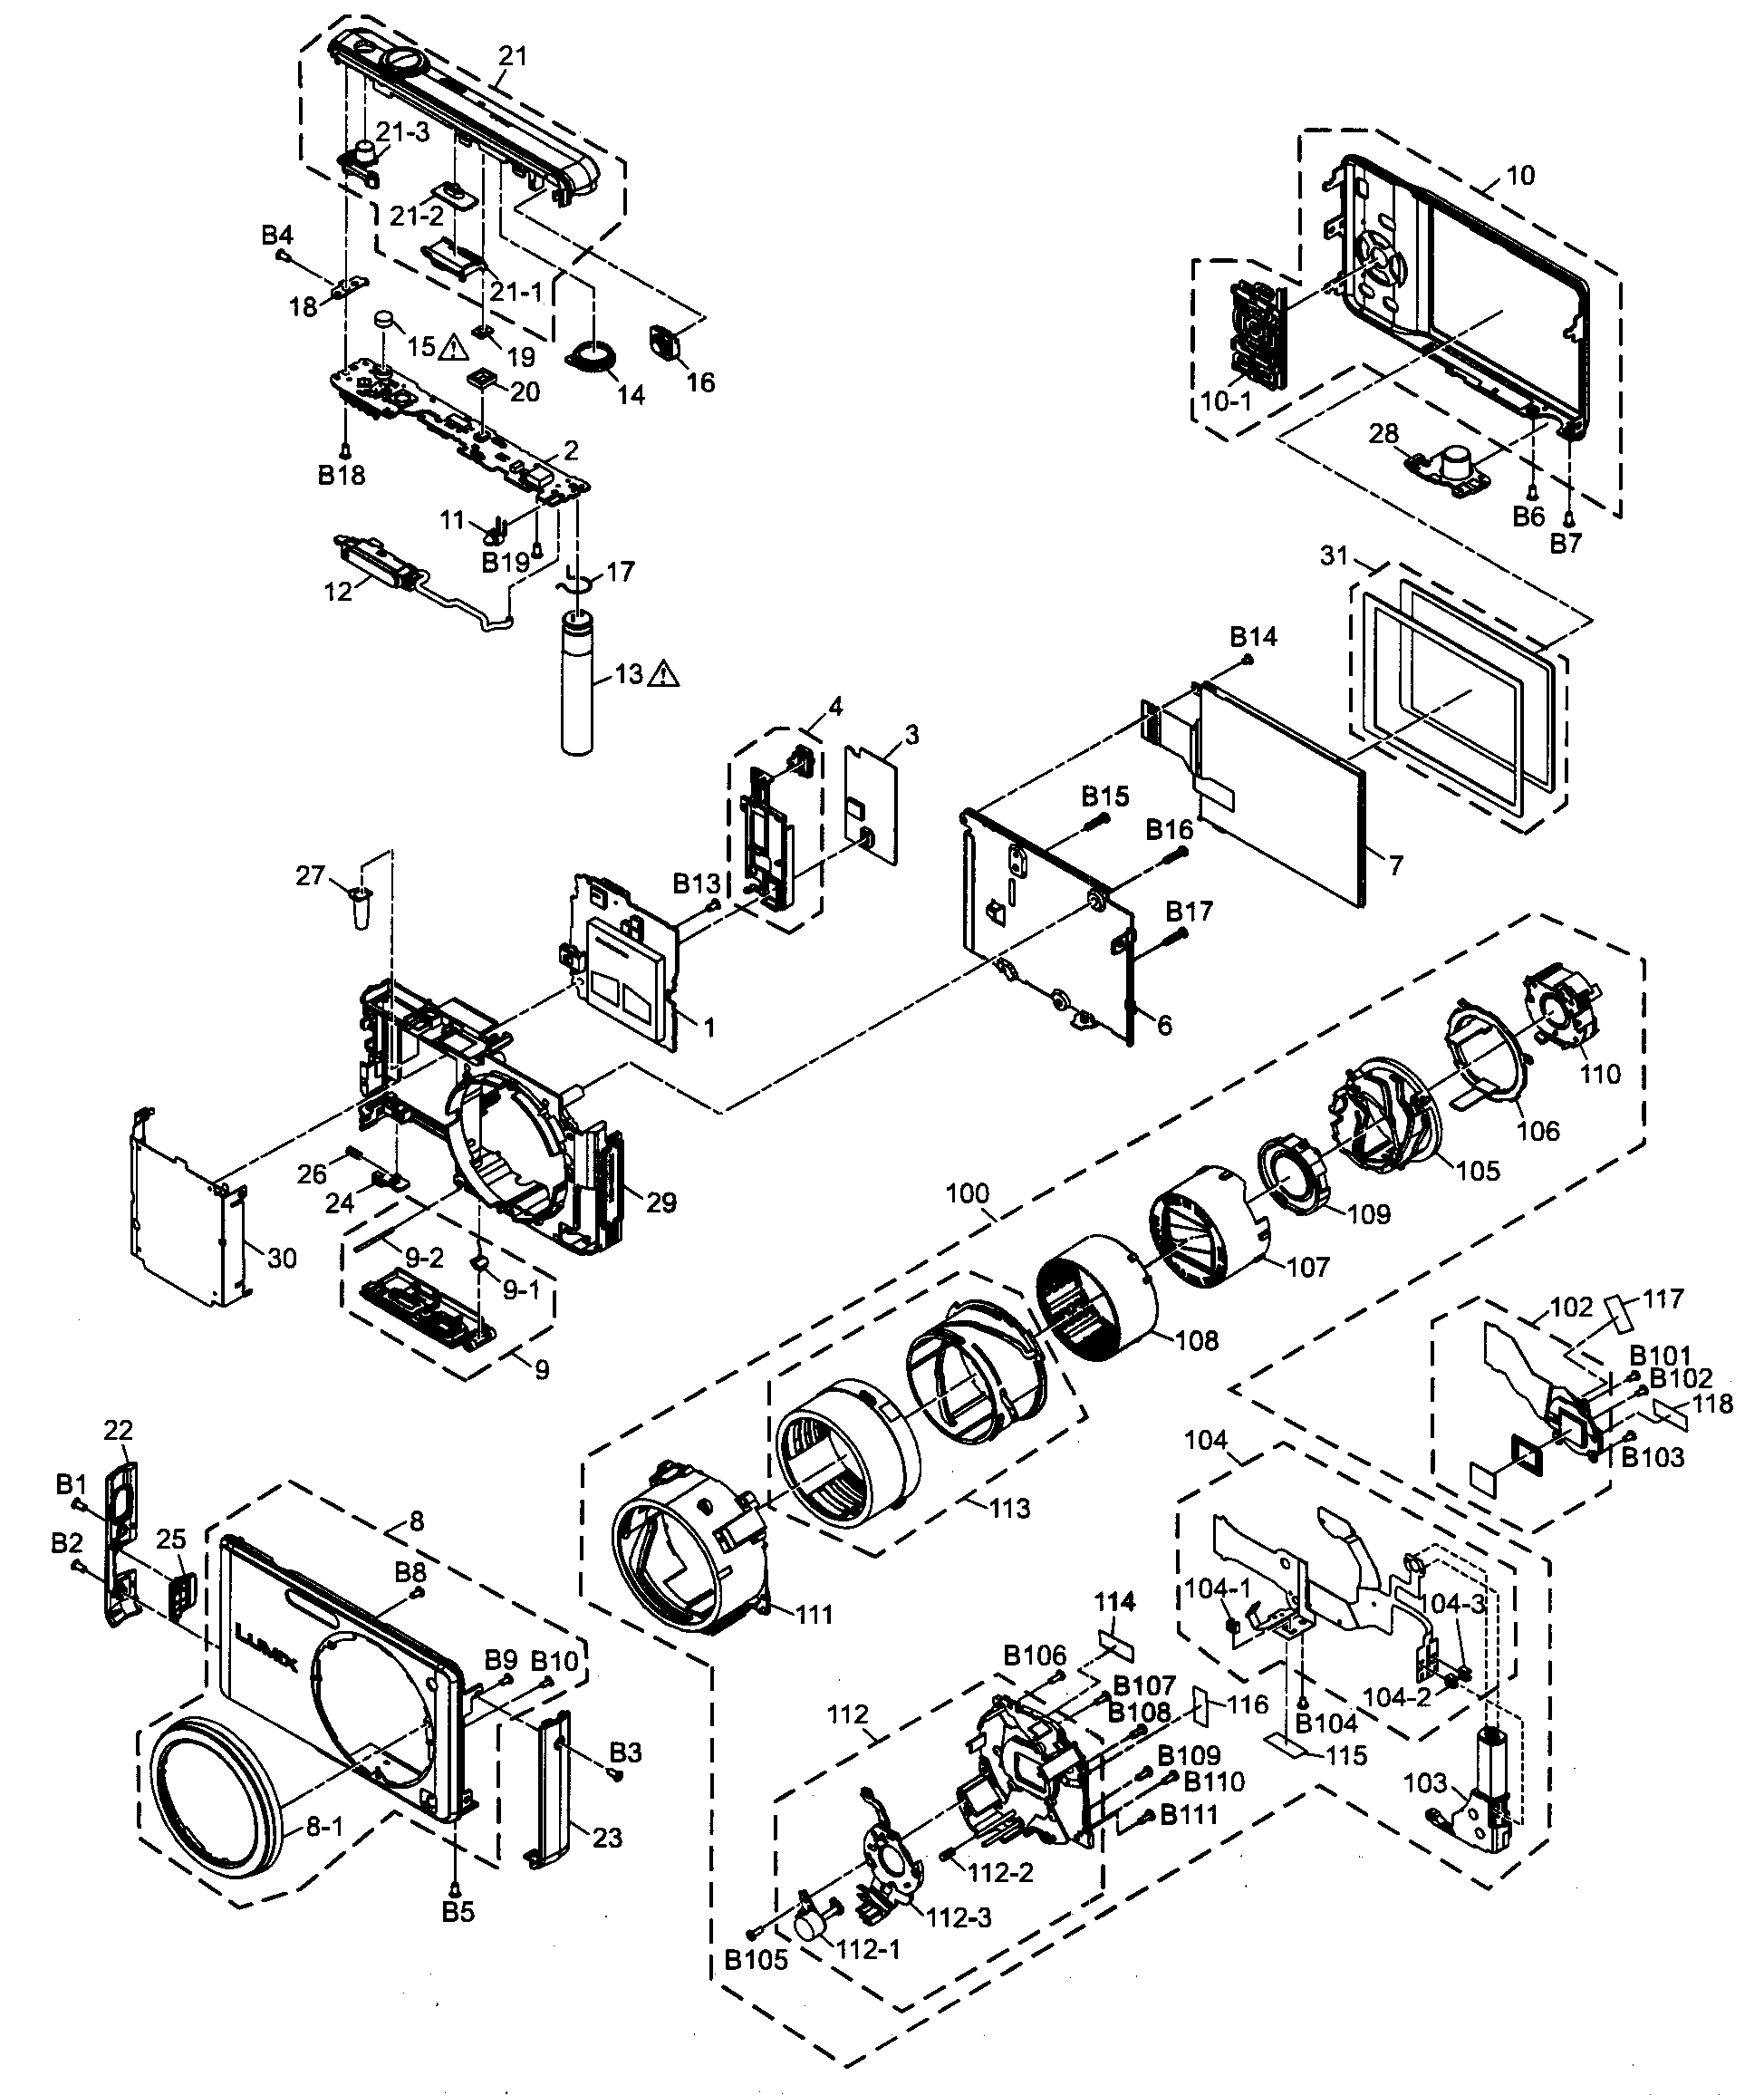 Wn Wiring Diagram Diagram And Parts List For Sharp